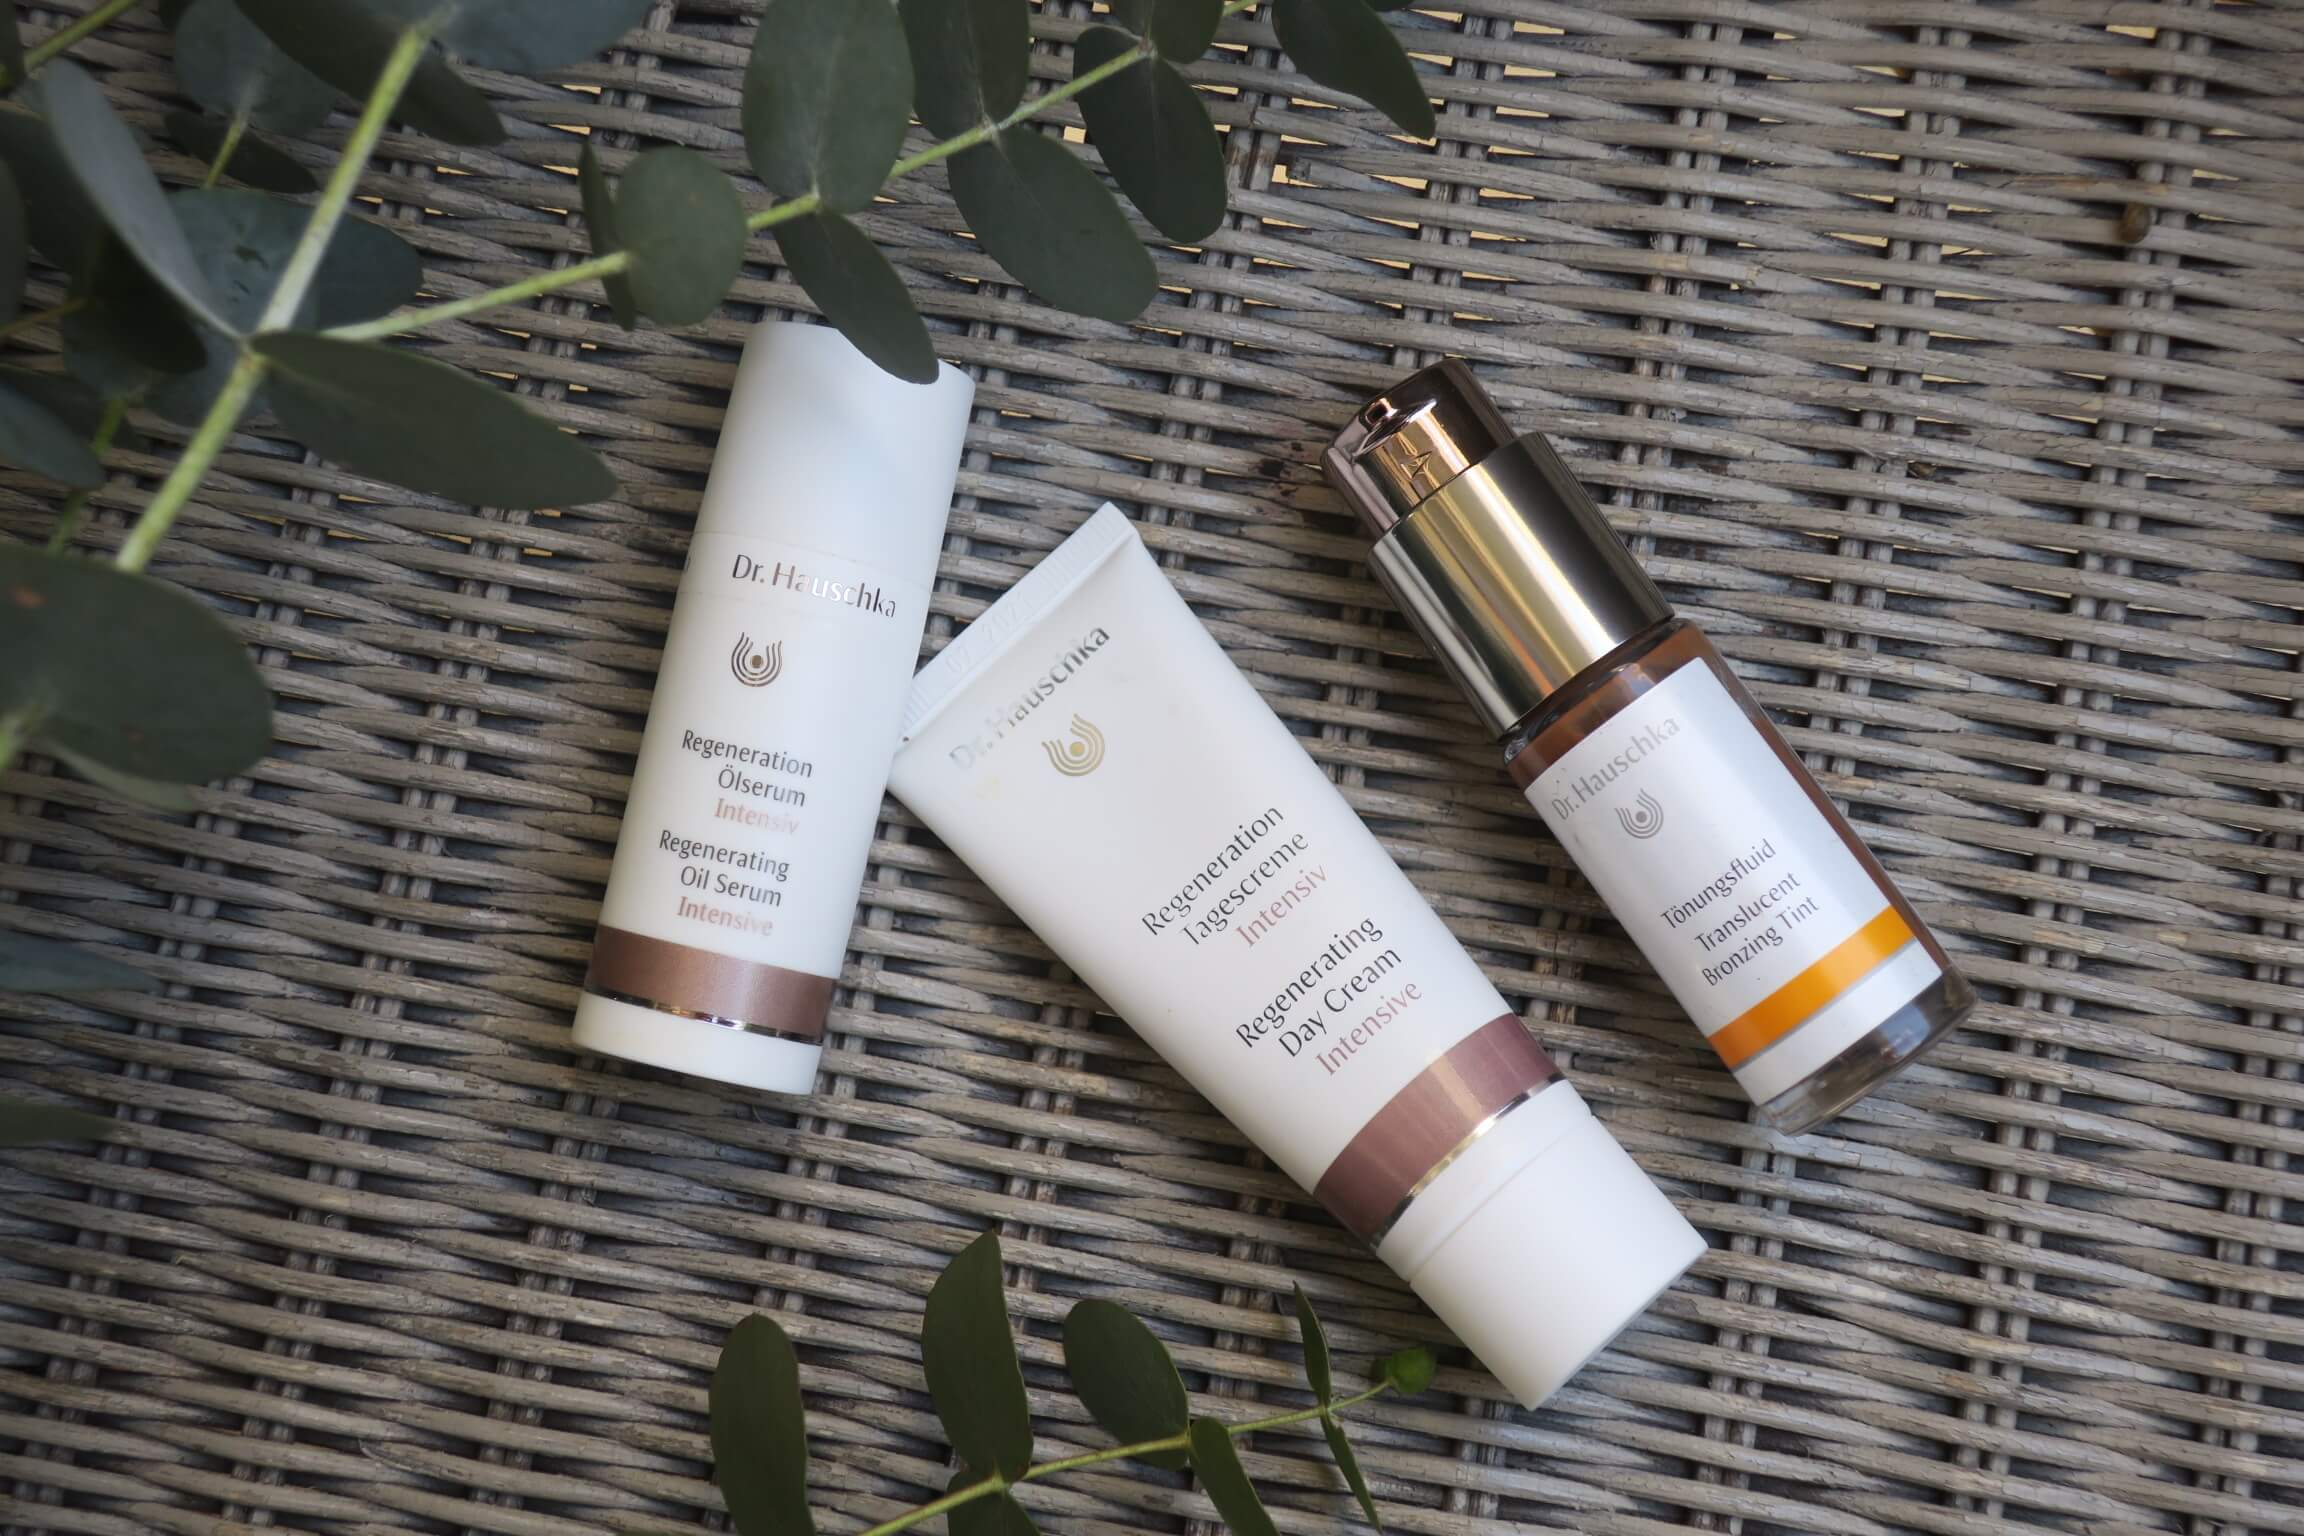 REVIEW: Dr Hauschka Regenerating Oil Serum, Regenerating Day Cream and Translucent Bronzing Tint